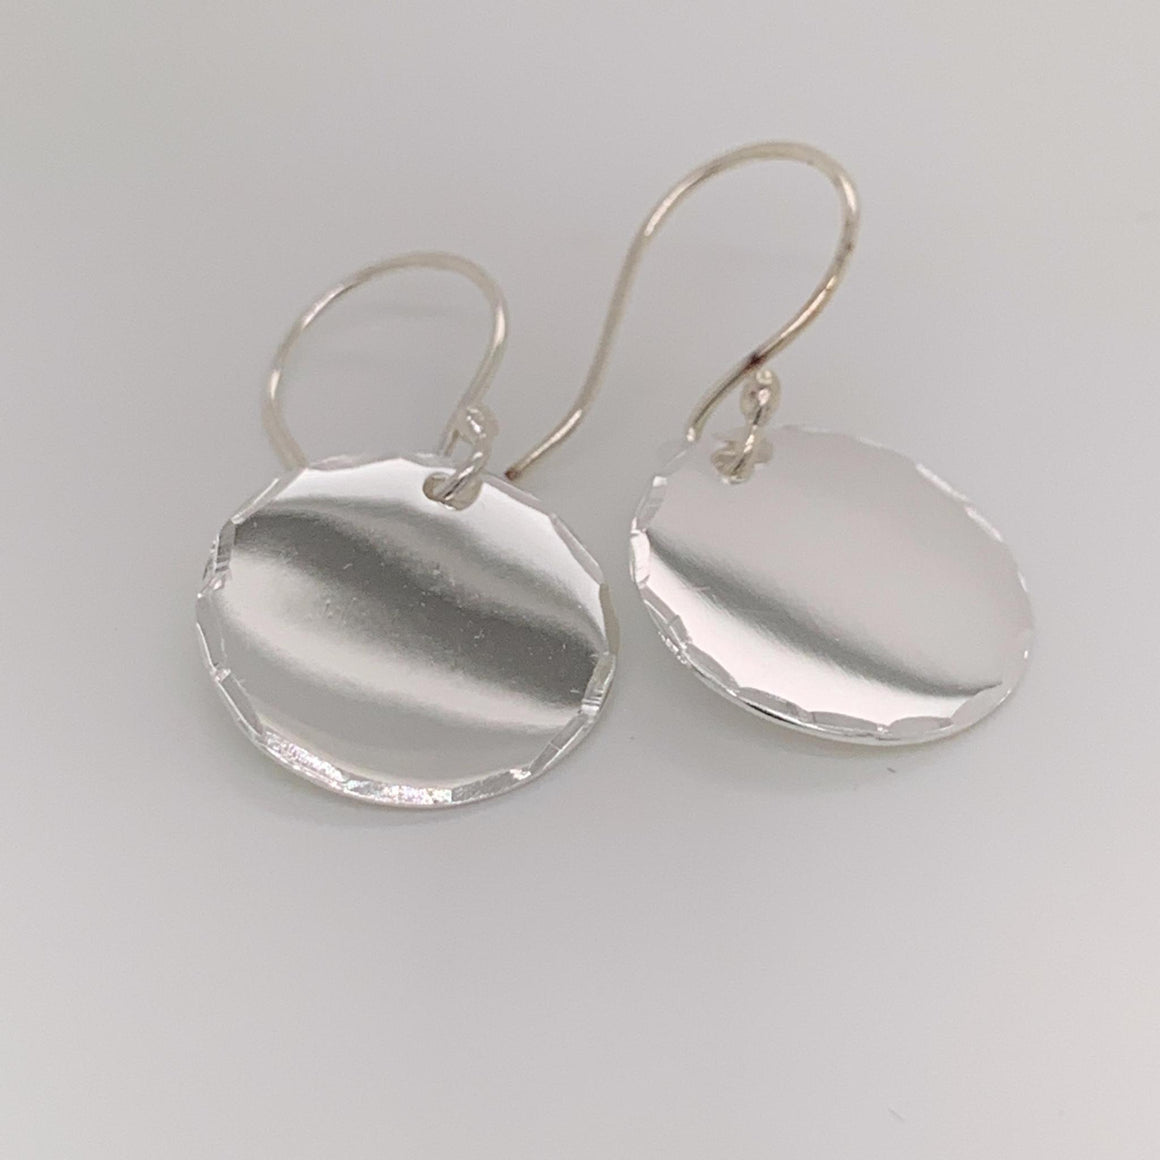 GERMAN SILVER ROUND EARRINGS WITH DIAMOND CUT TRIM - Atlanta Jewelers Supply